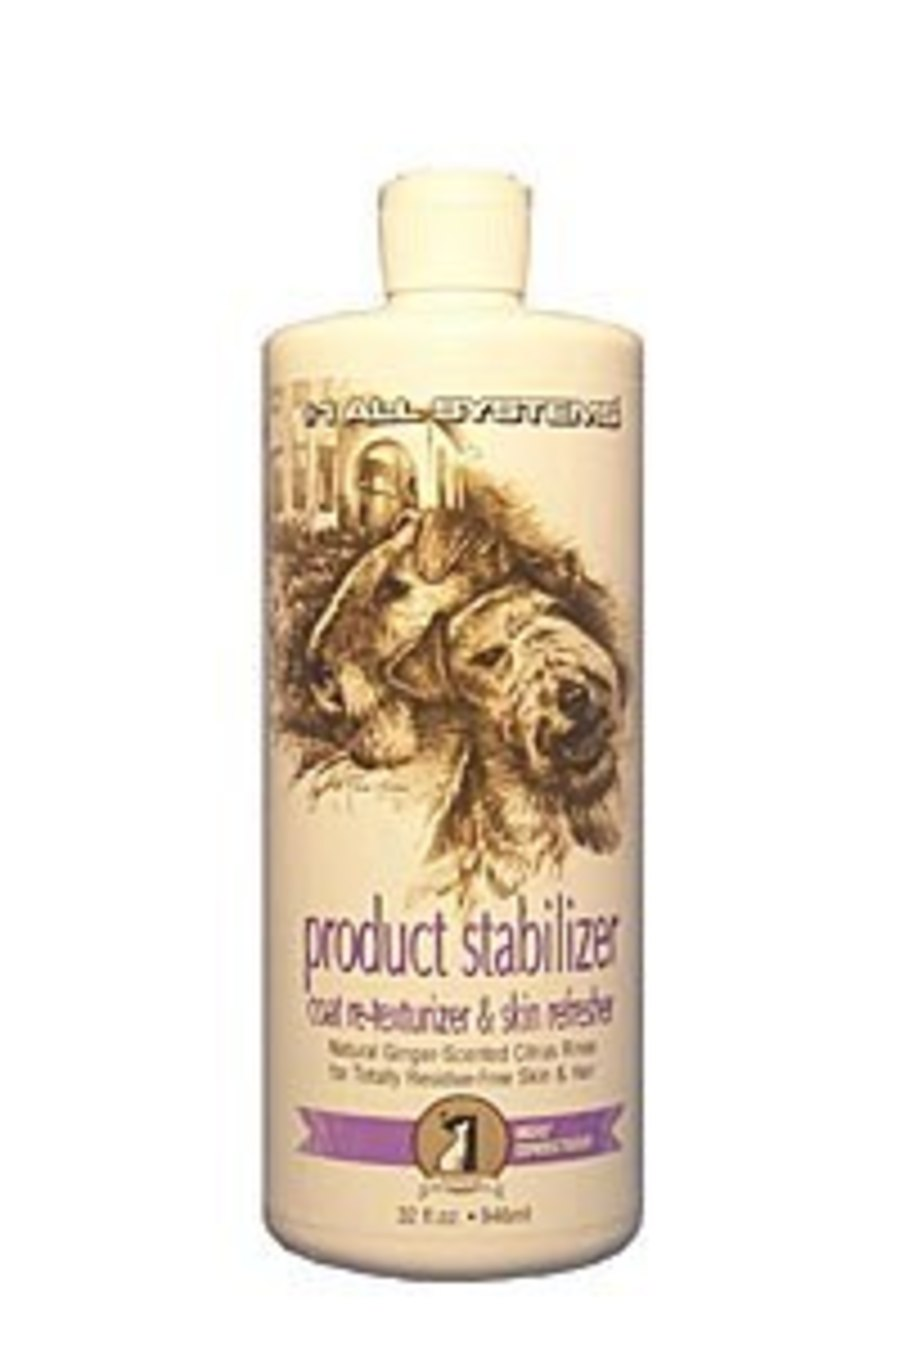 #1 All Systems Product Stabilizer